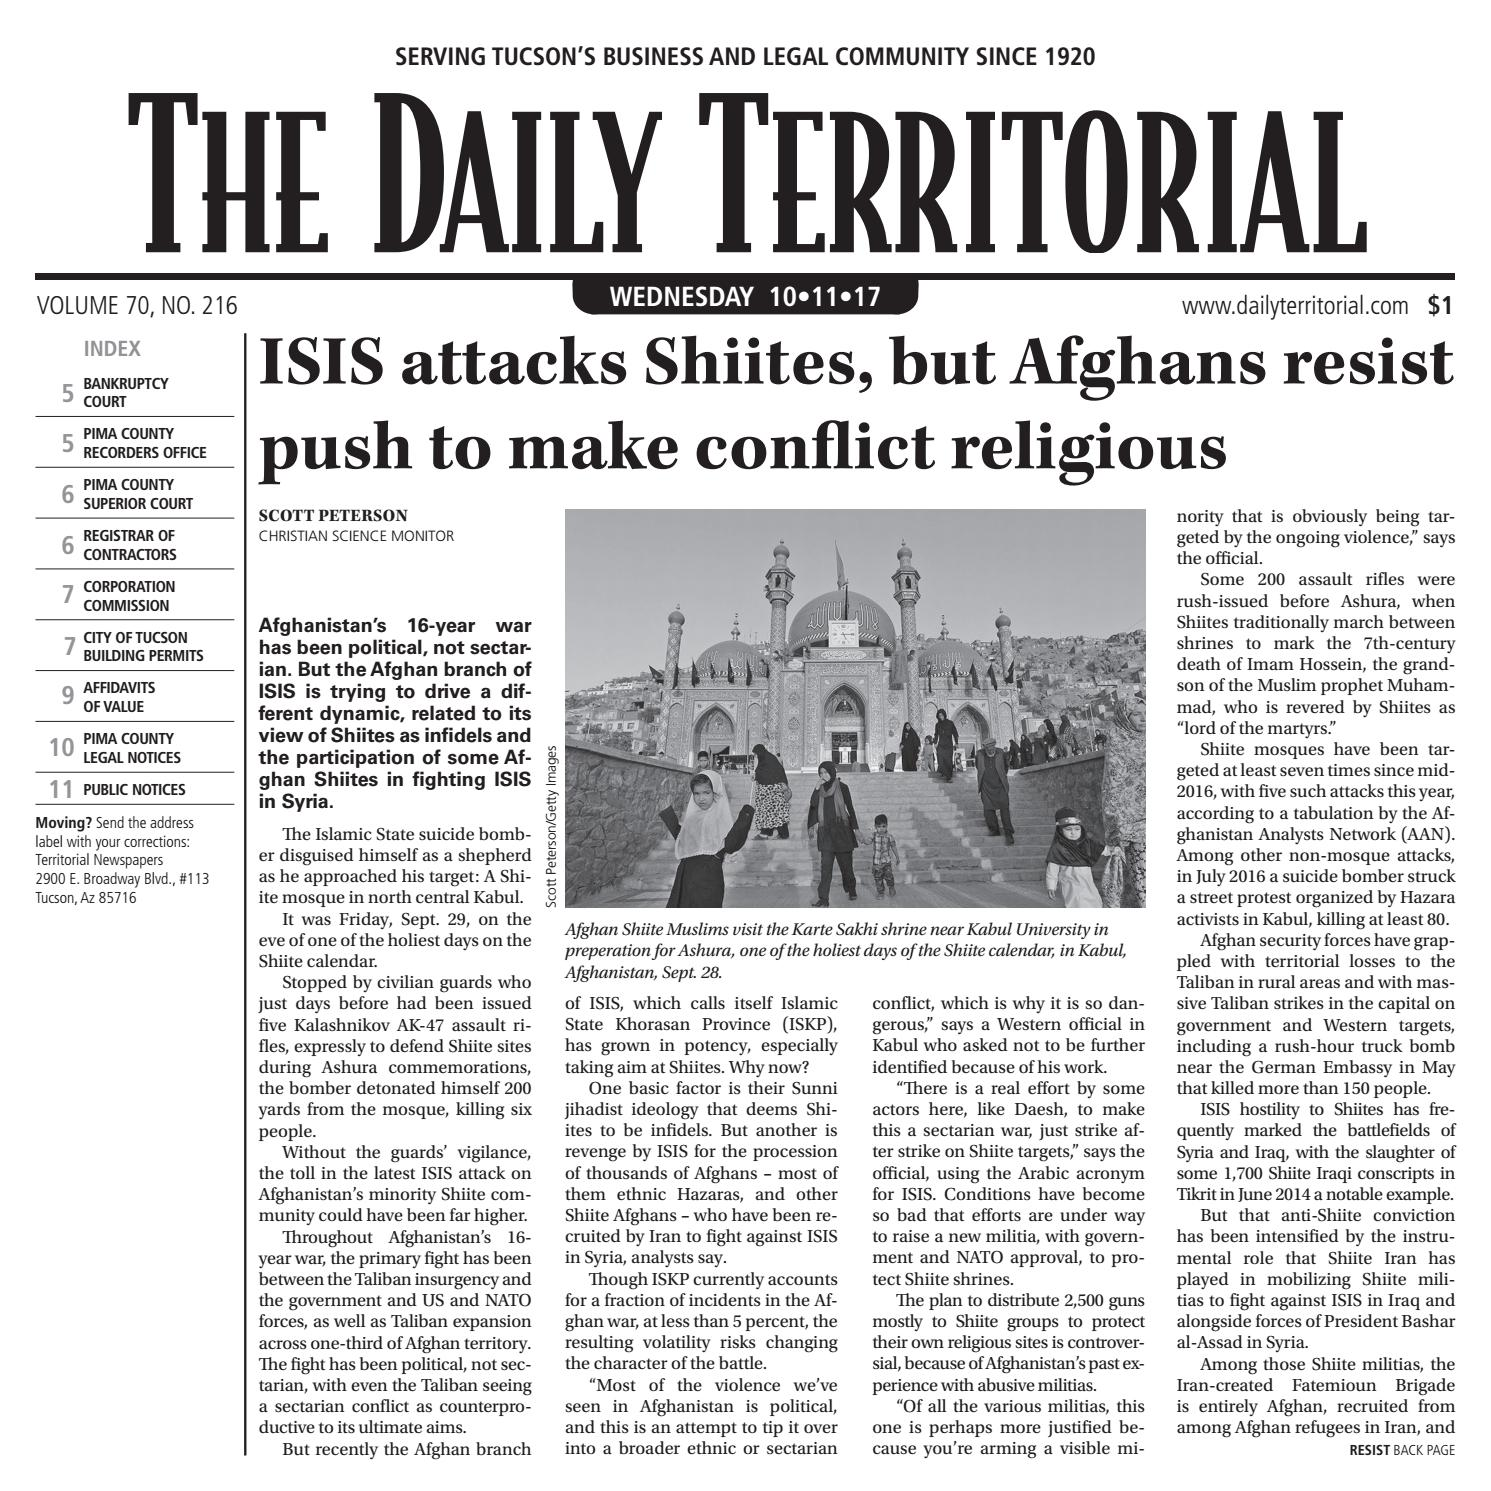 10/11/2017 The Daily Territorial by Wick Communications - issuu